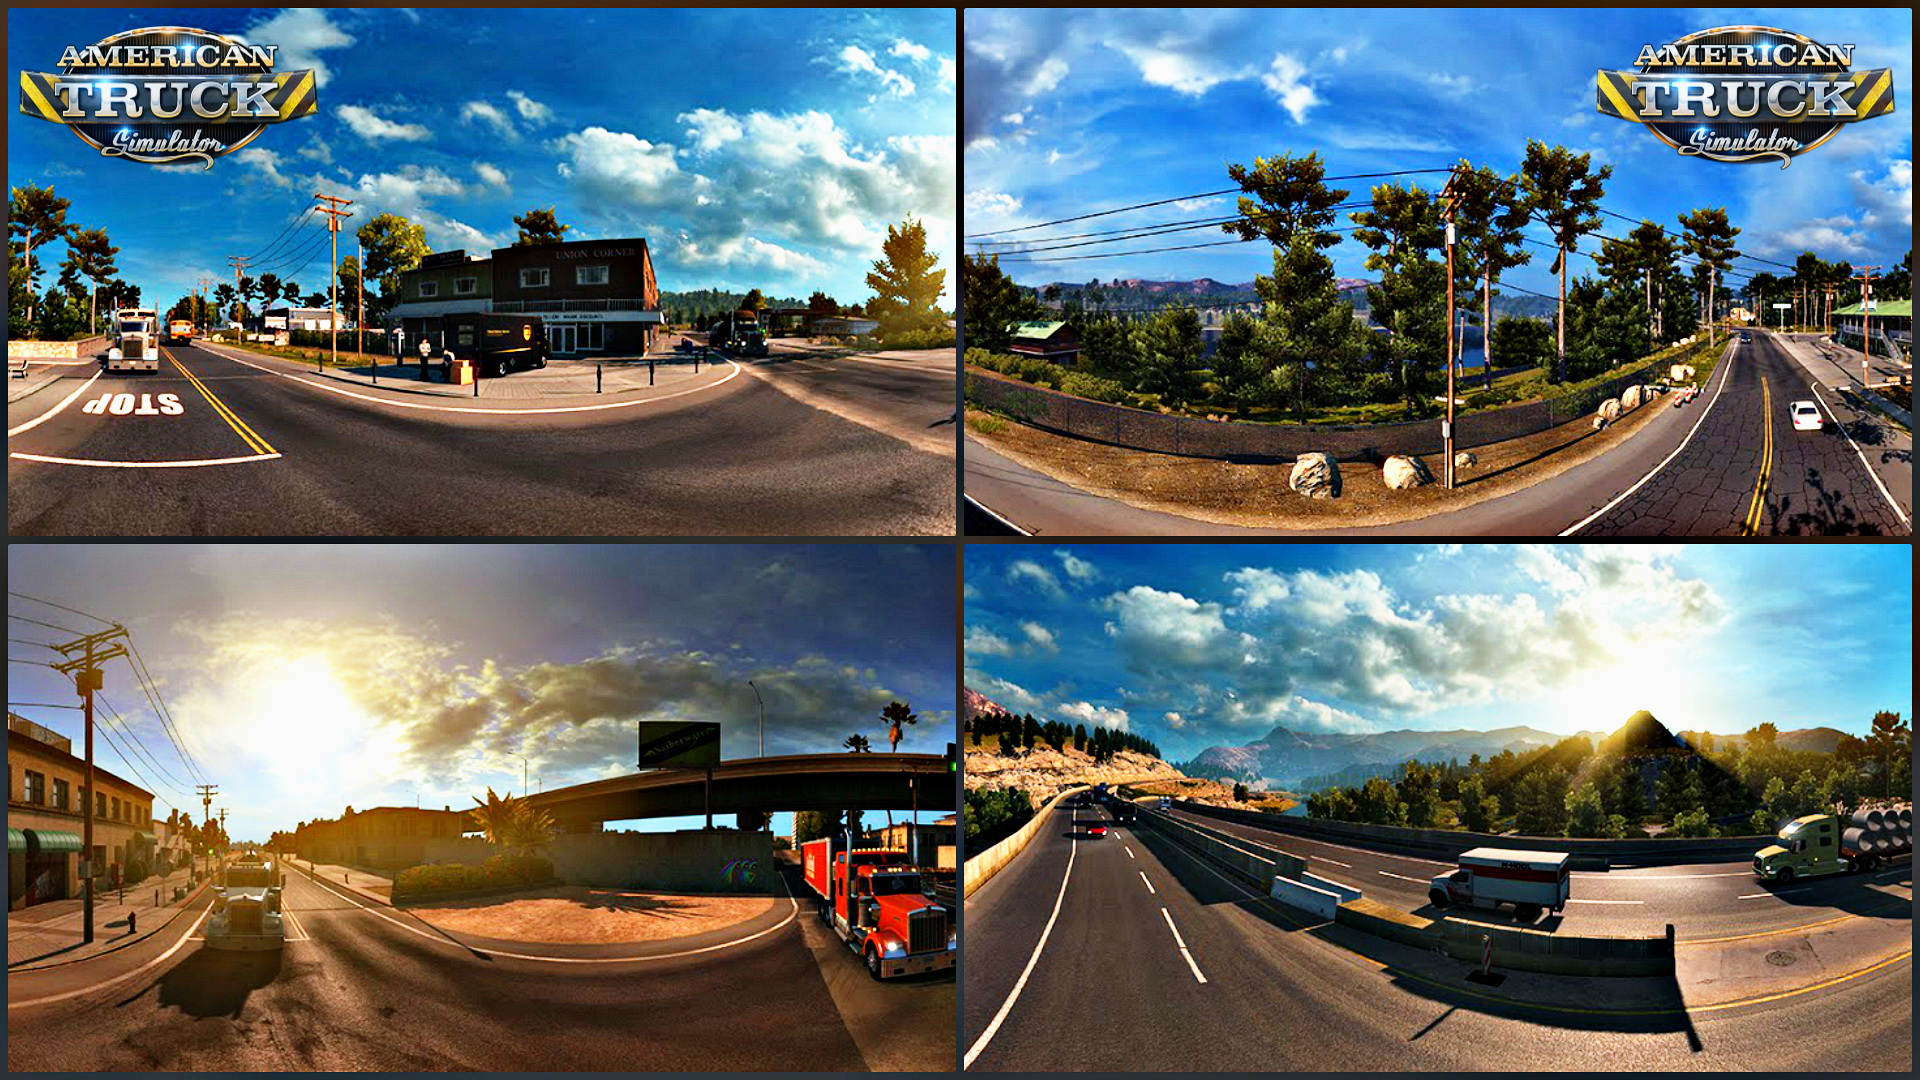 American Truck Simulator: California - Many Projects, One Goal